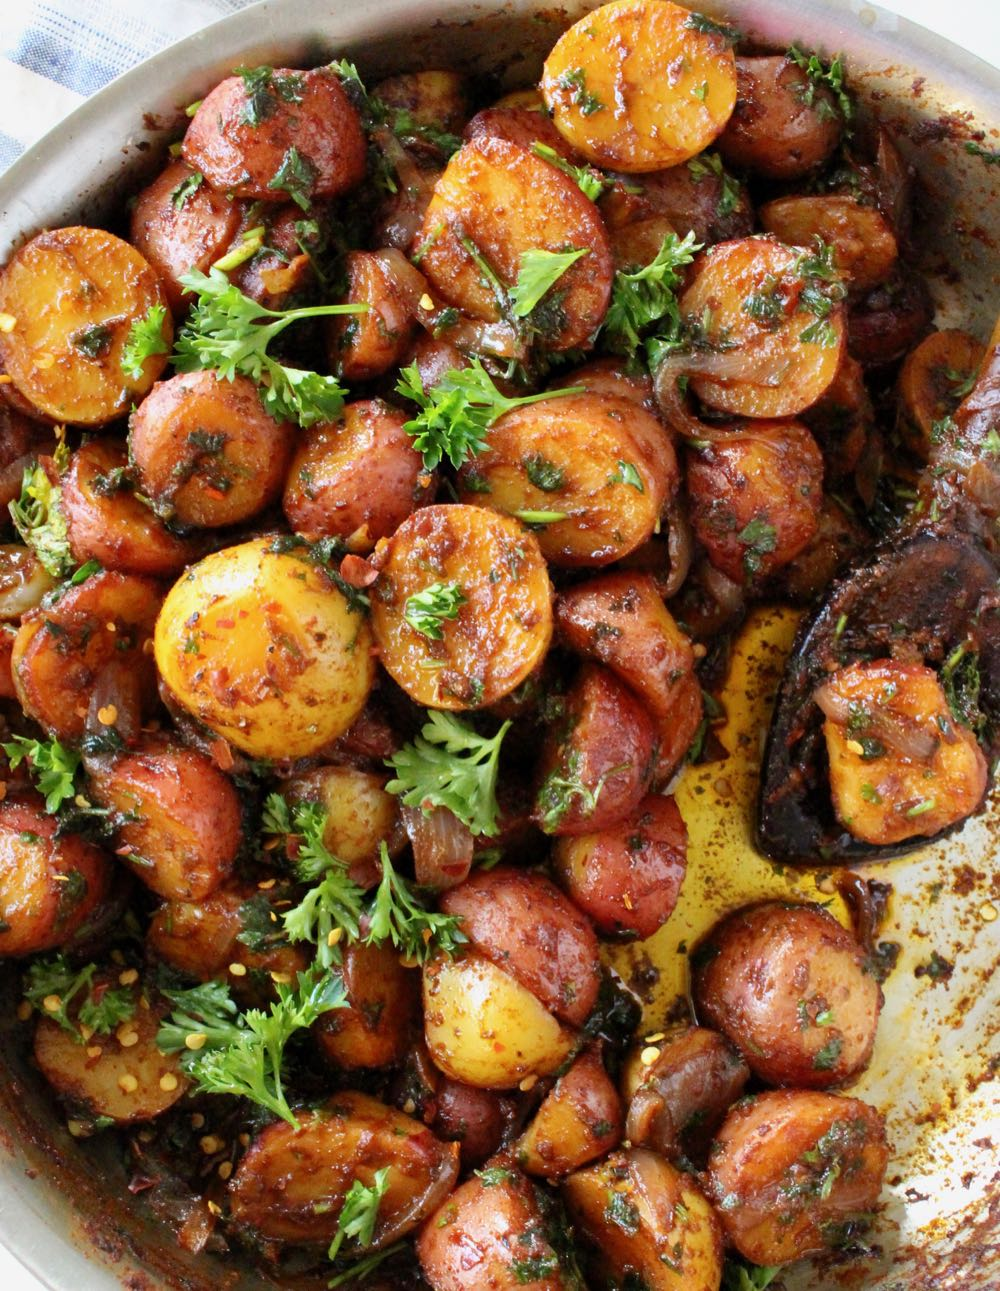 Rustic Paprika Potatoes with Onions, Olive Oil, Dill and Parsley